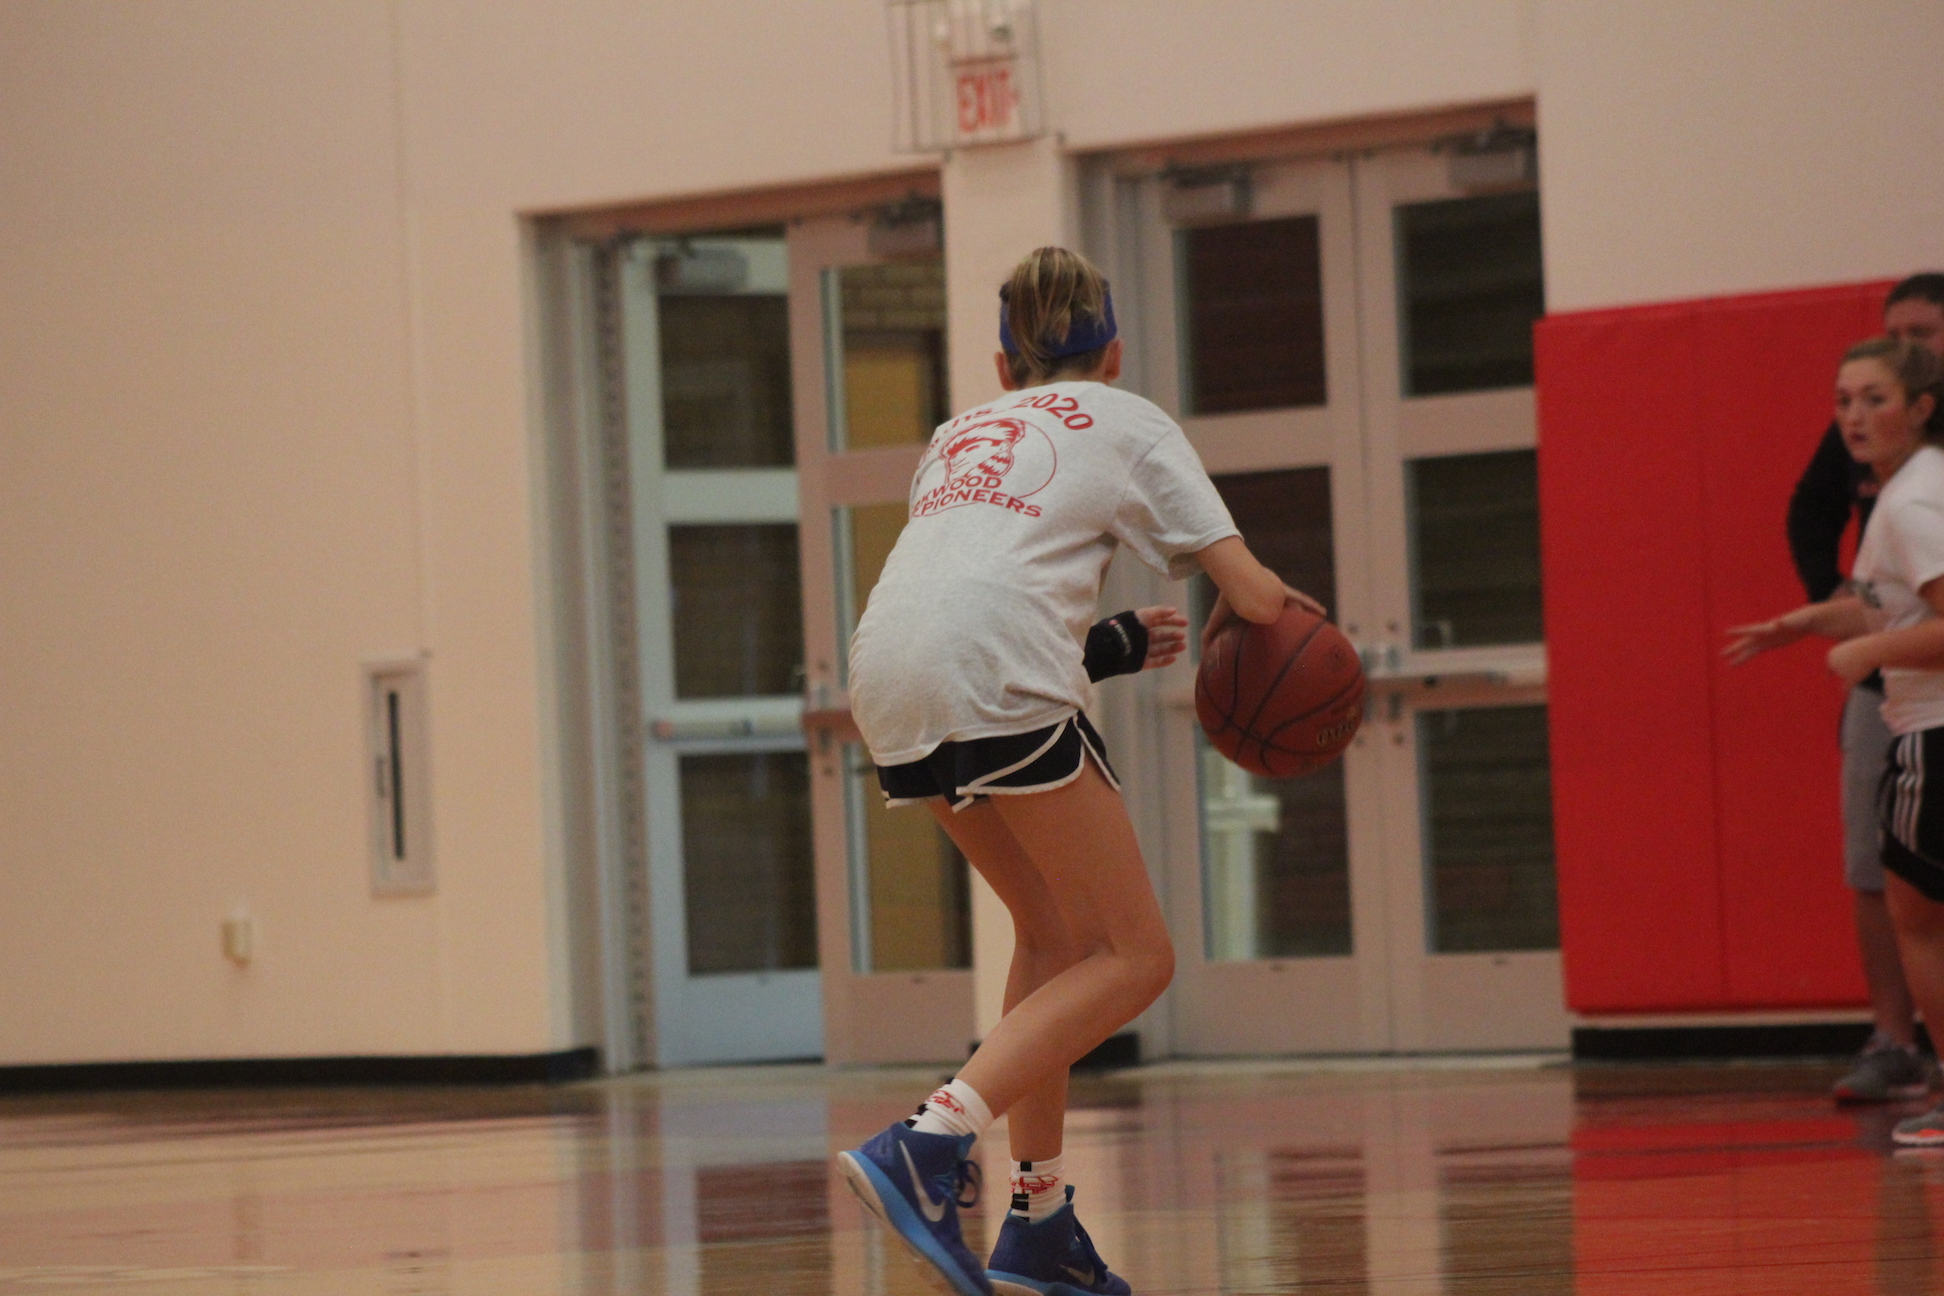 Riley+Mulvaney%2C+freshman%2C+dribbles+before+a+pass+during+JV+girls+basketball+practice.